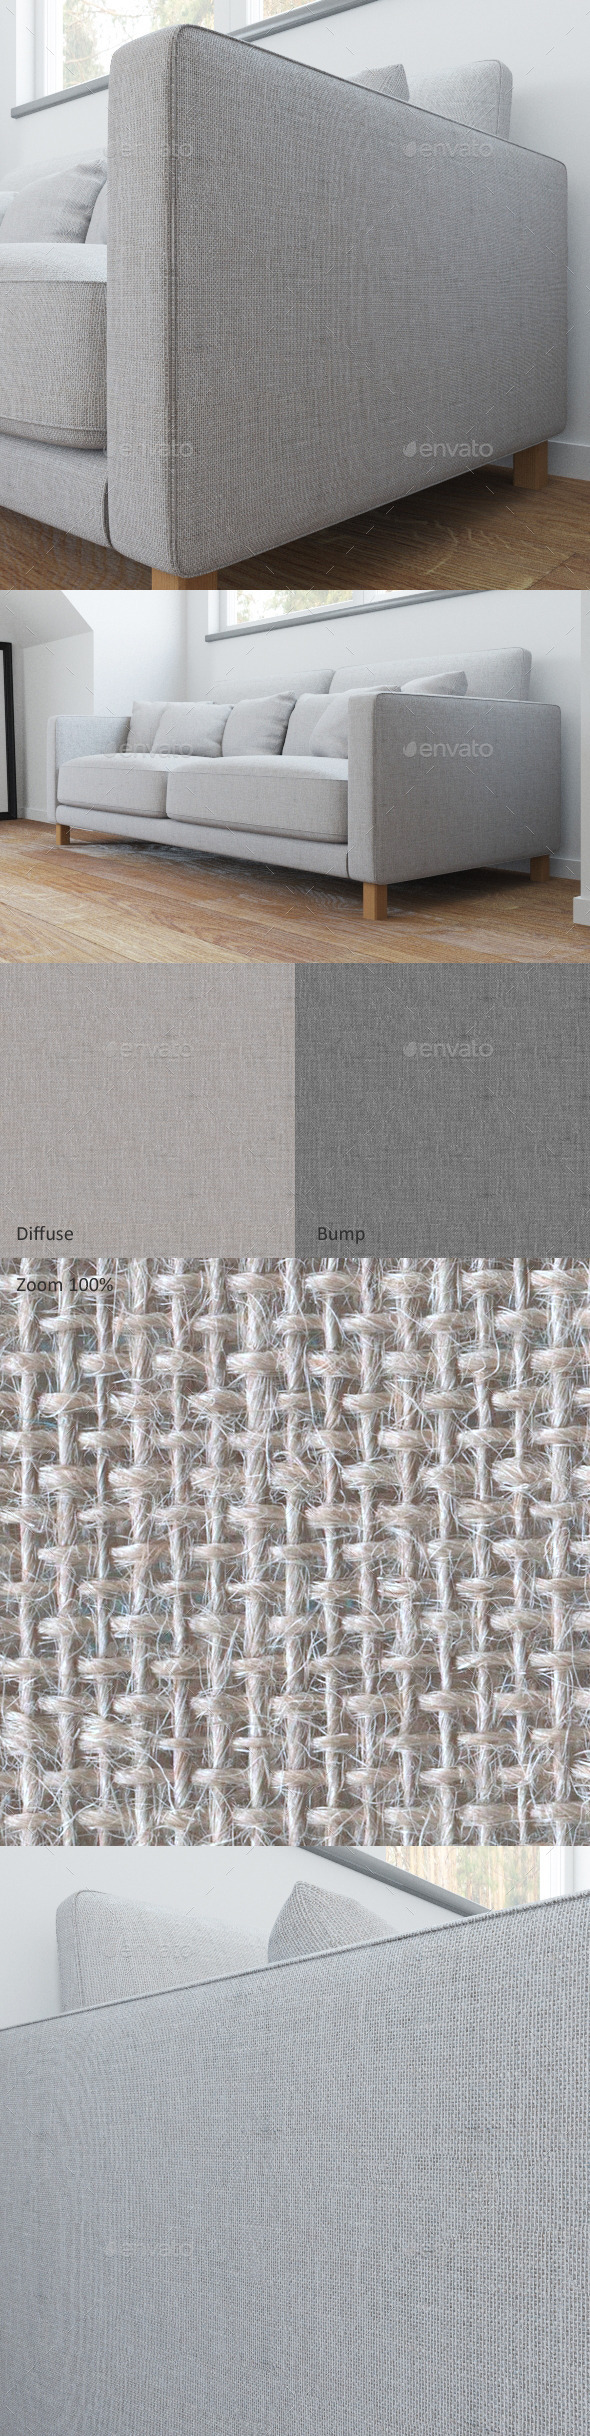 Sofa linen seamless texture - 3DOcean Item for Sale